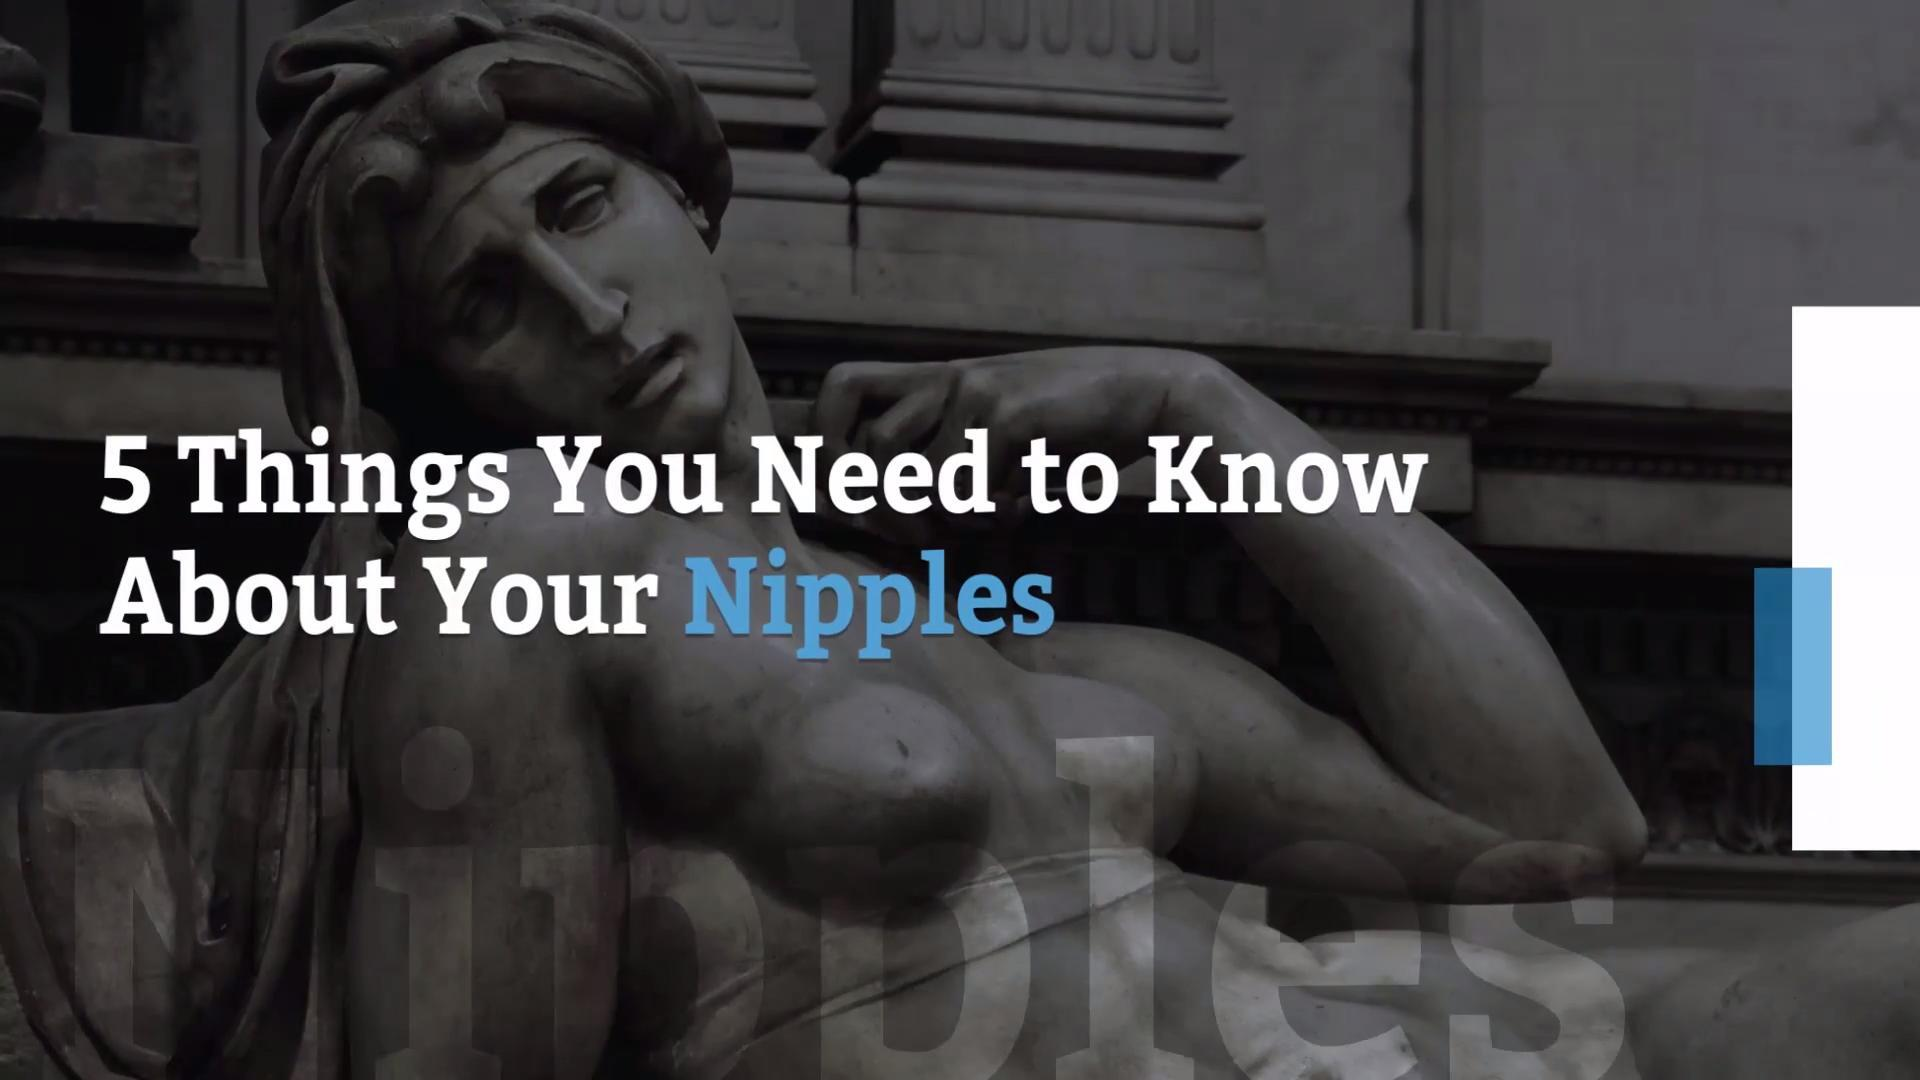 5 Things You Need to Know About Your Nipples